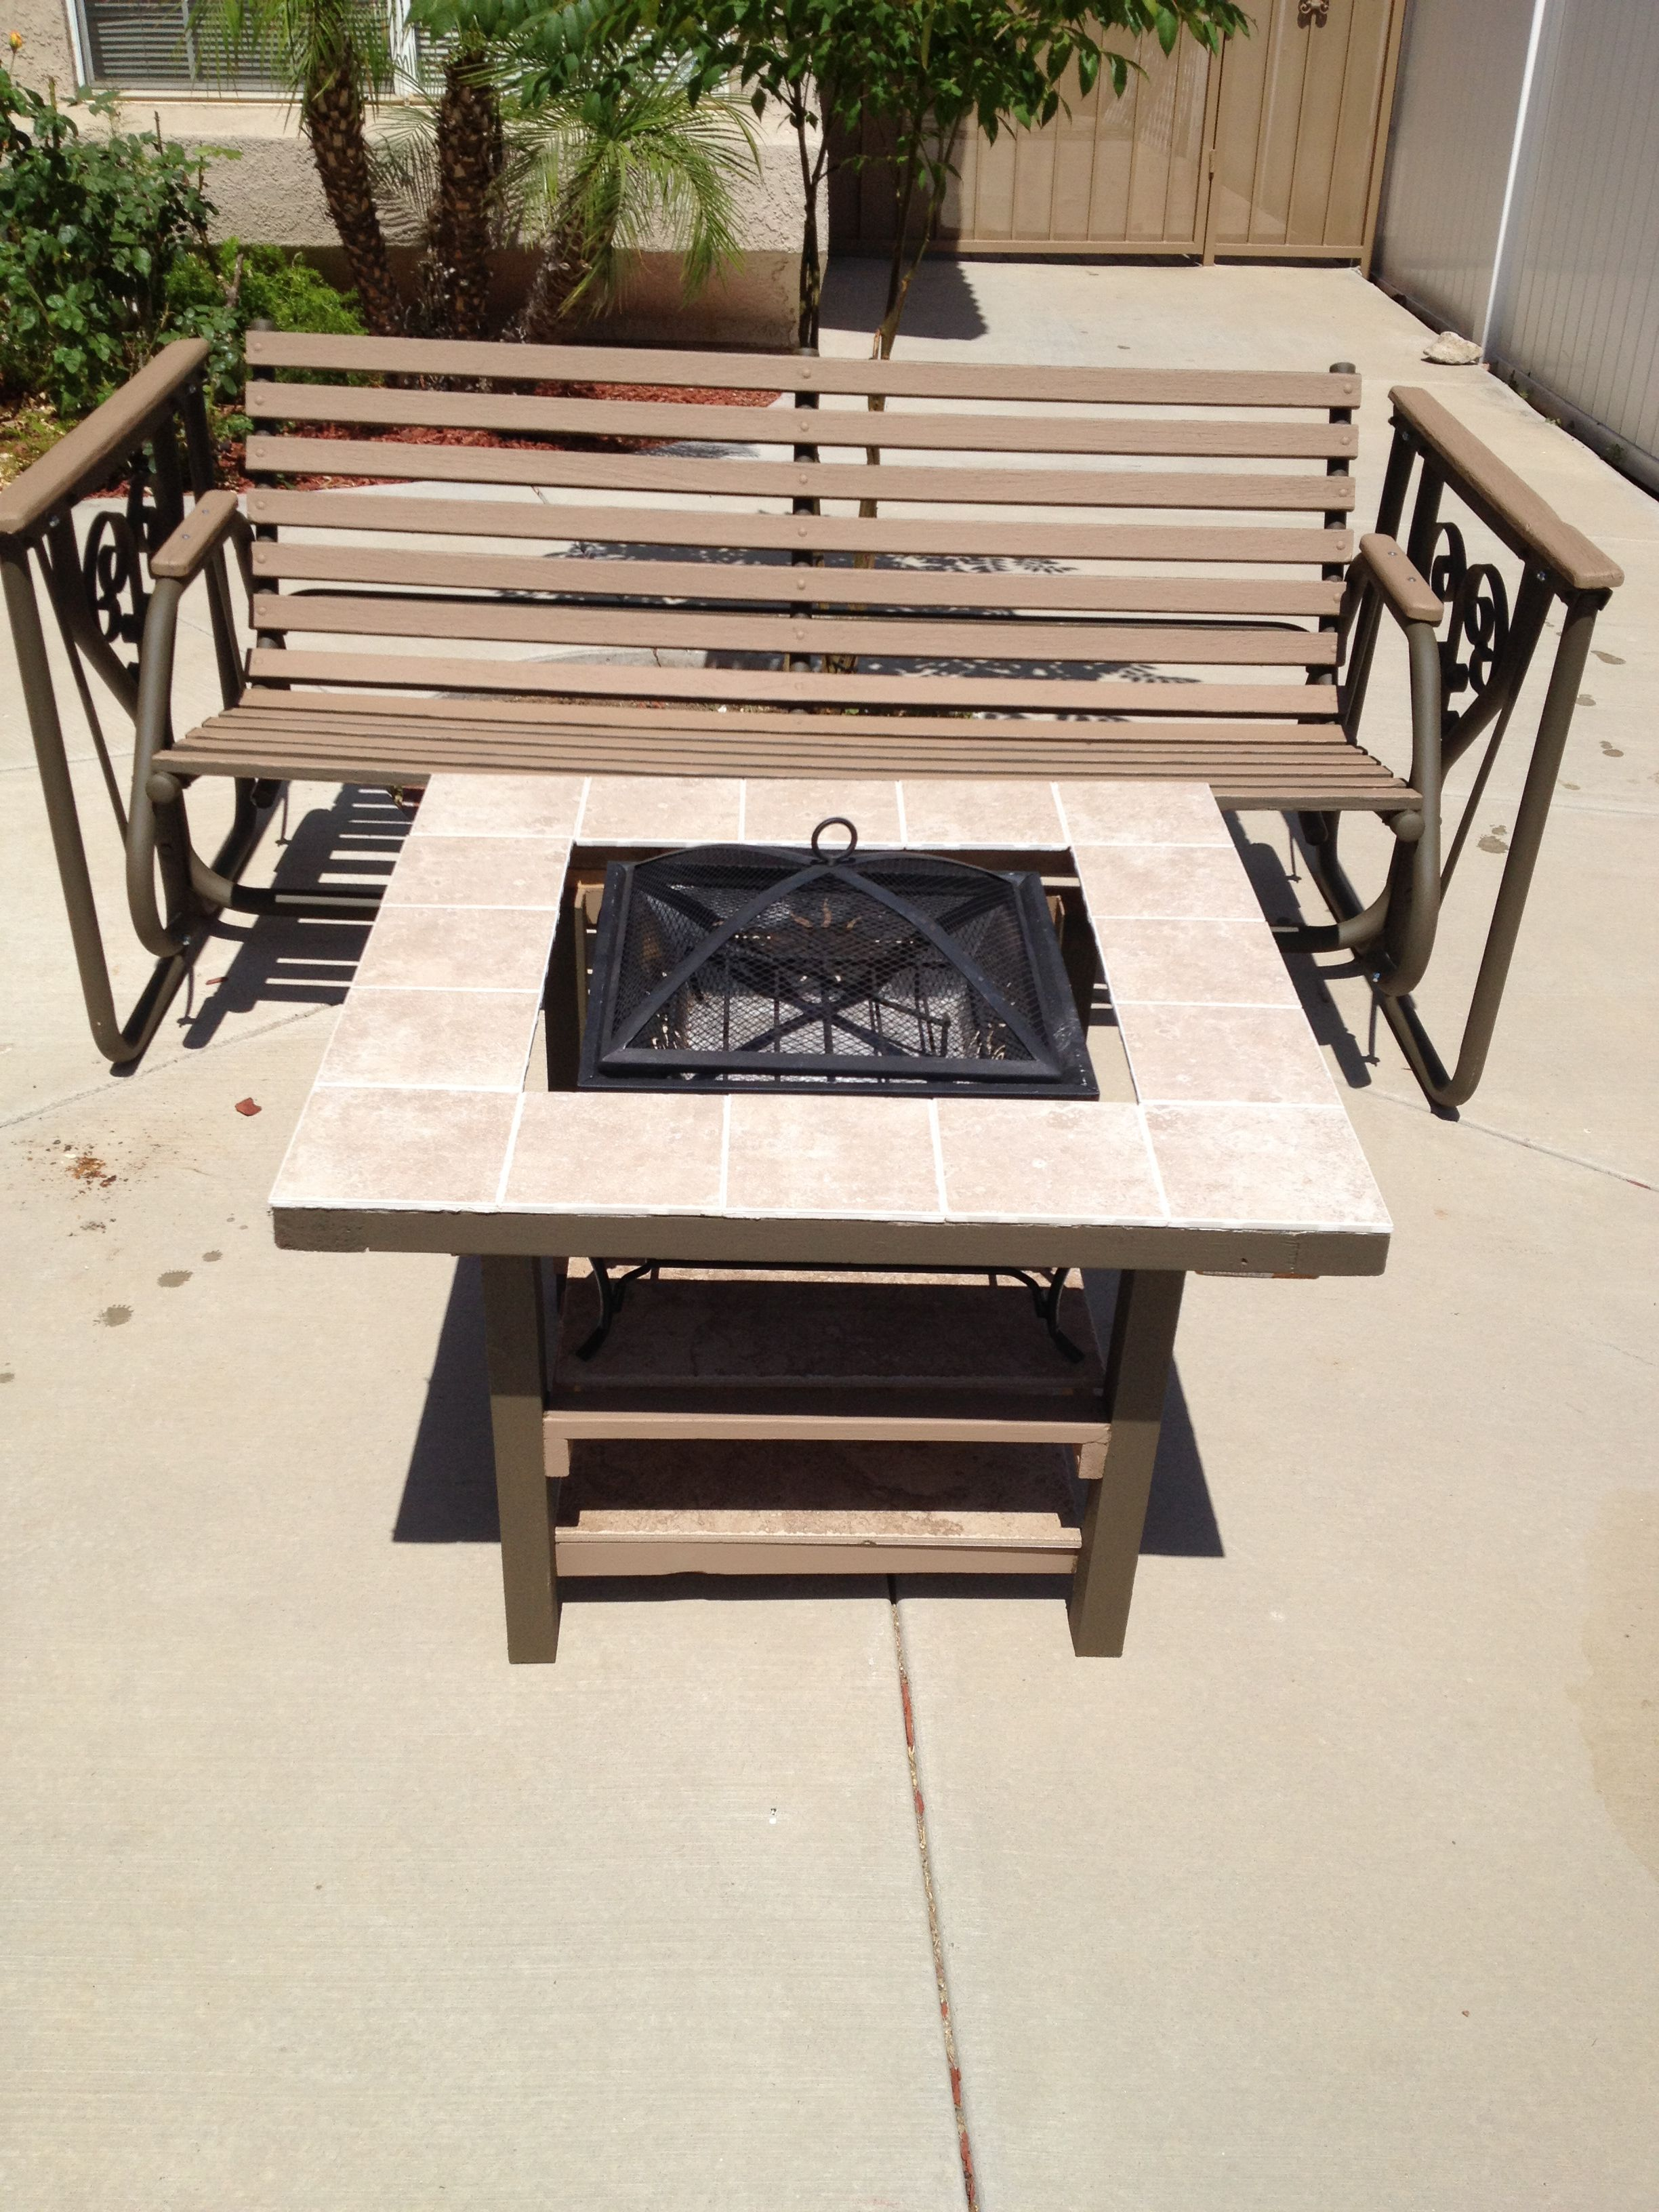 15 Grill And Home Made Table From Scrap Wood And Left Over